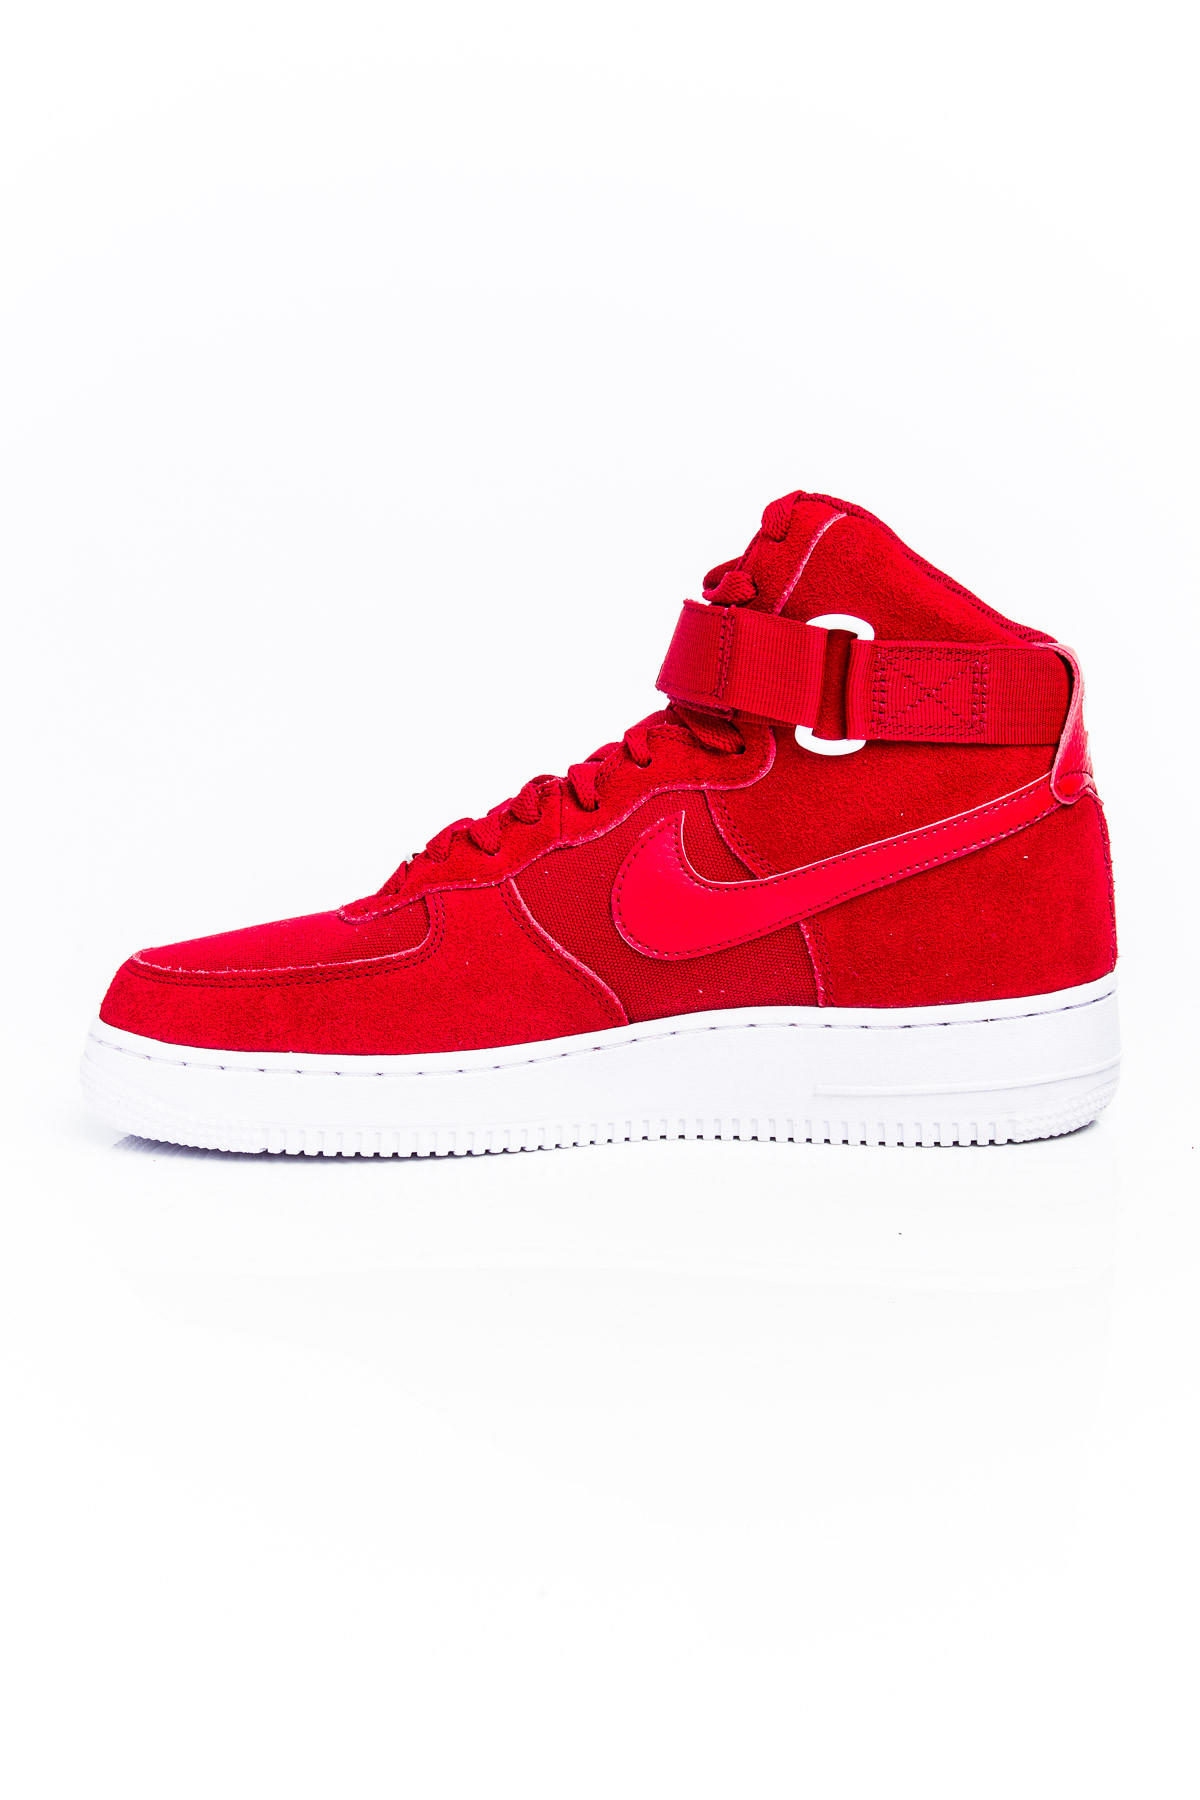 Nike Air Force 1 High 07 Sneaker from Probus  f1c7a5314